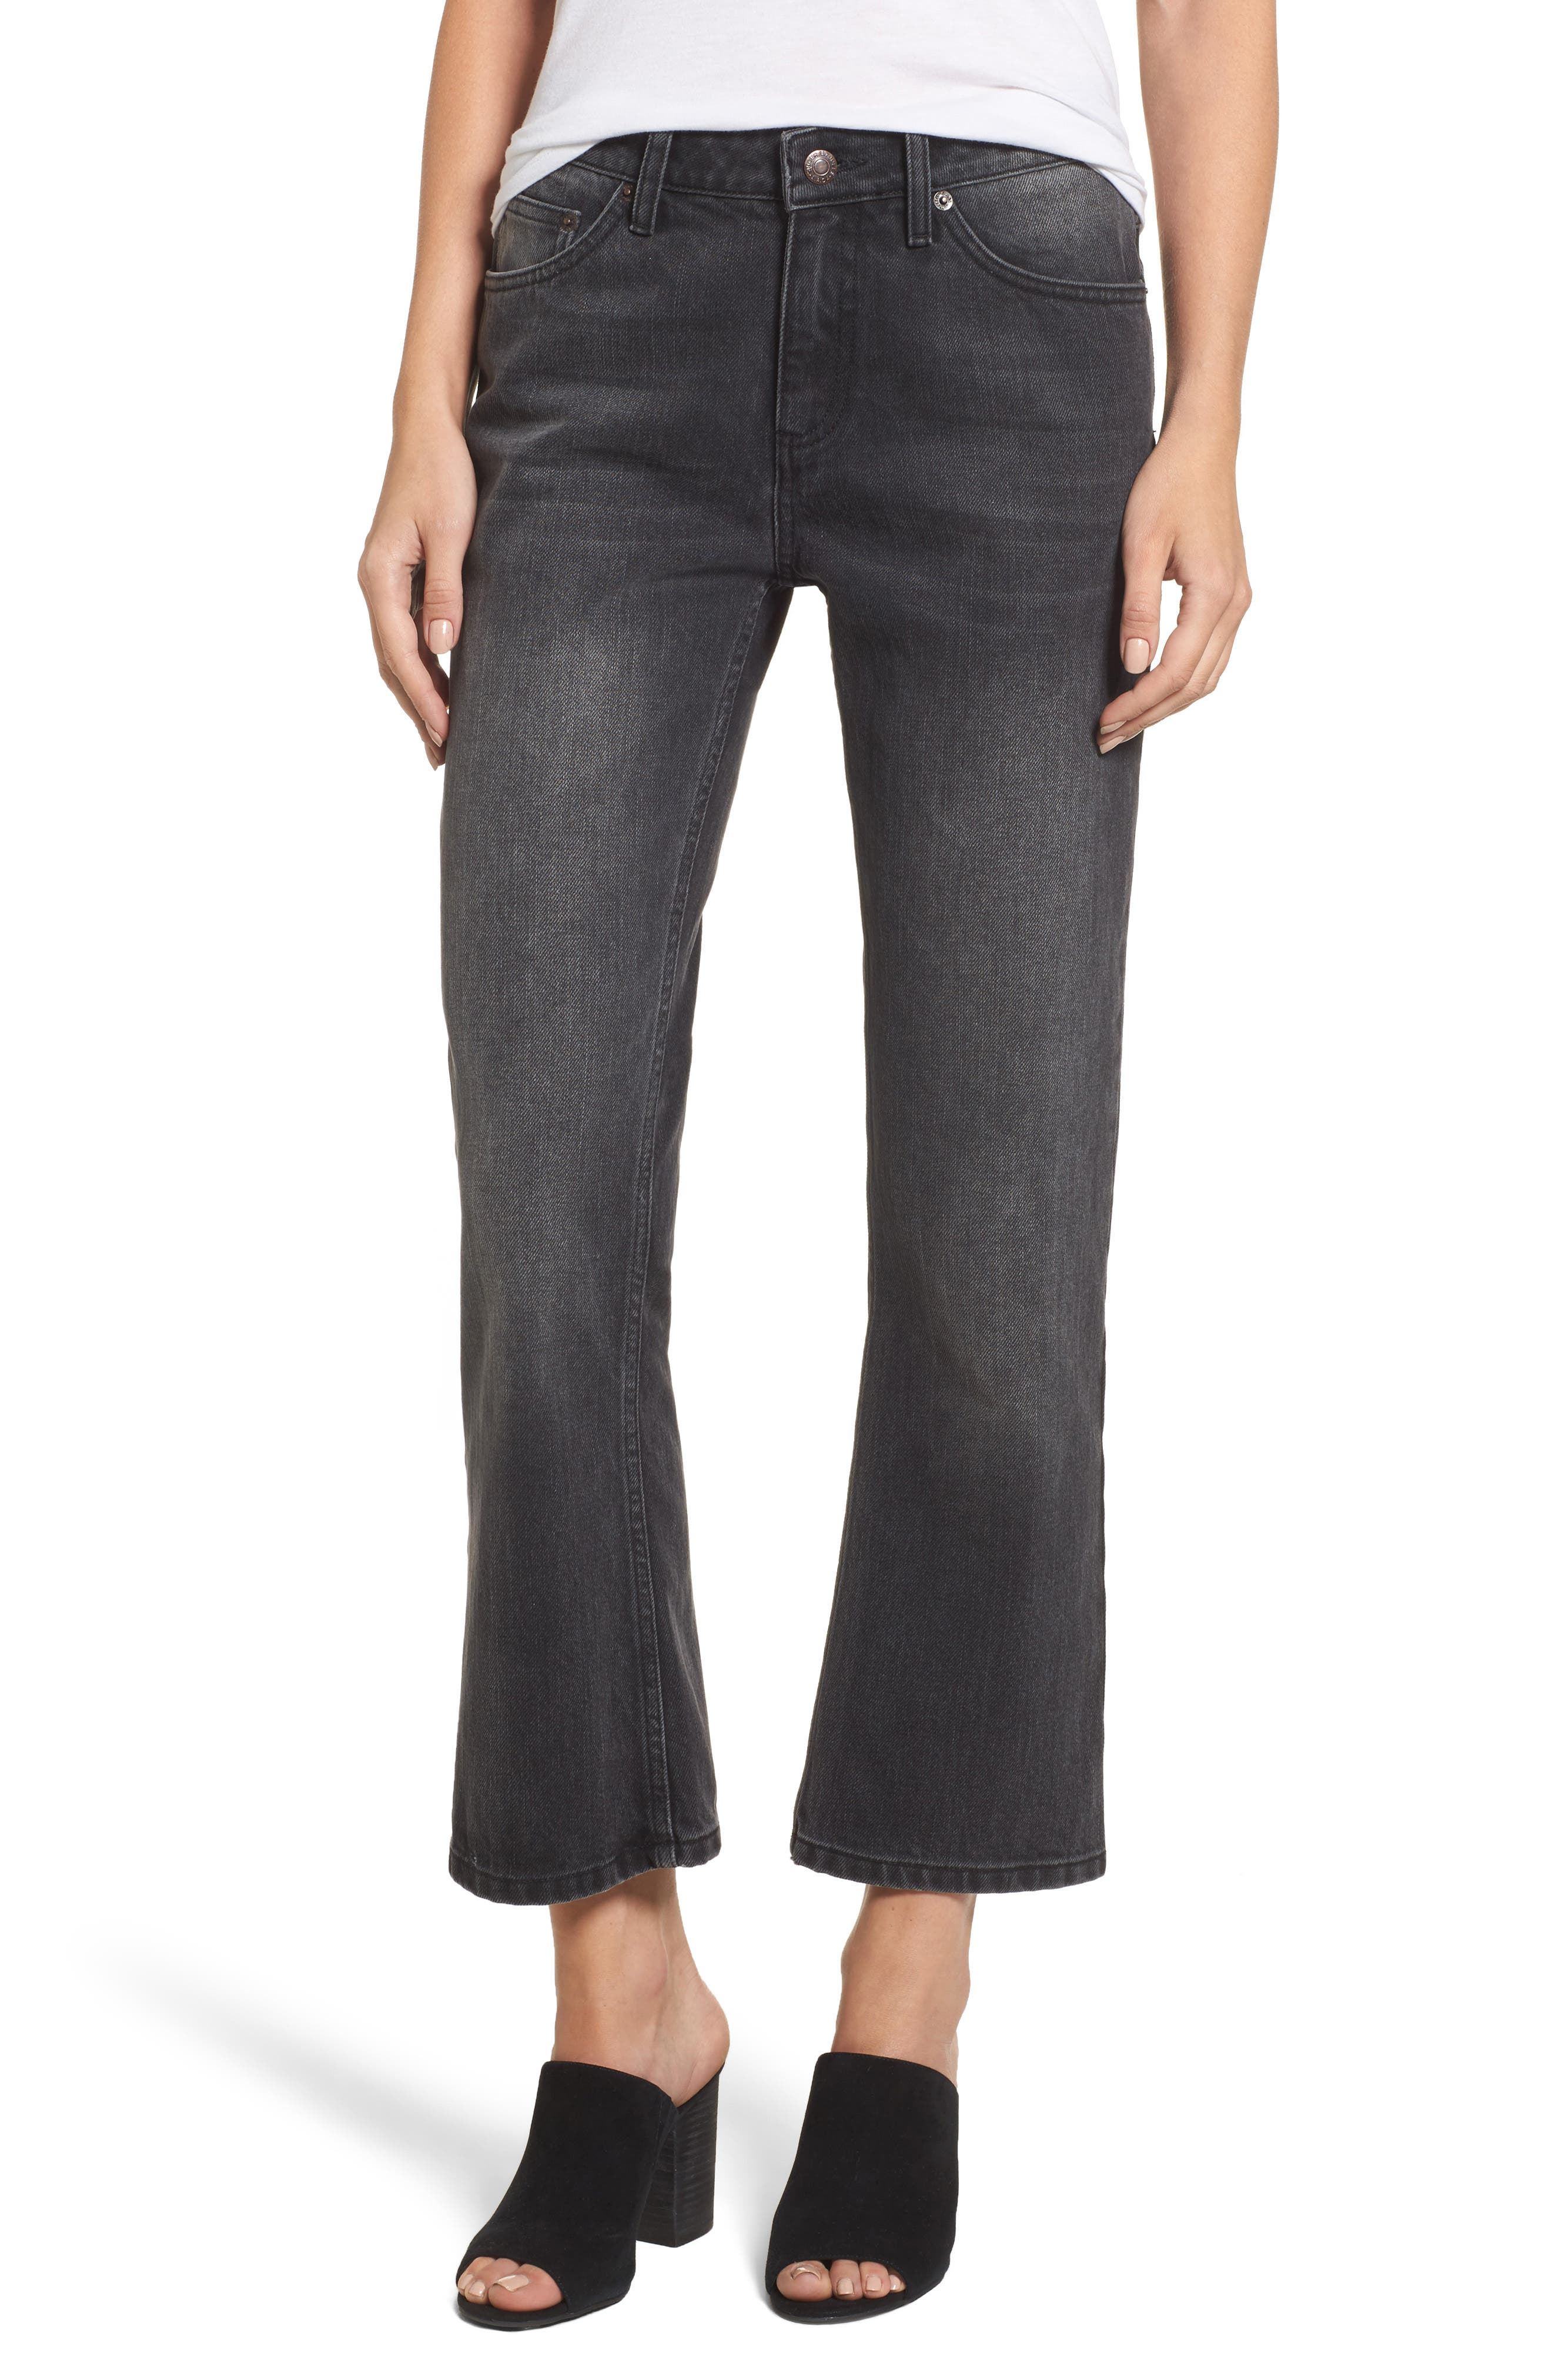 Alternate Image 1 Selected - Sincerely Jules High Waist Crop Flare Jeans (Washed Black)